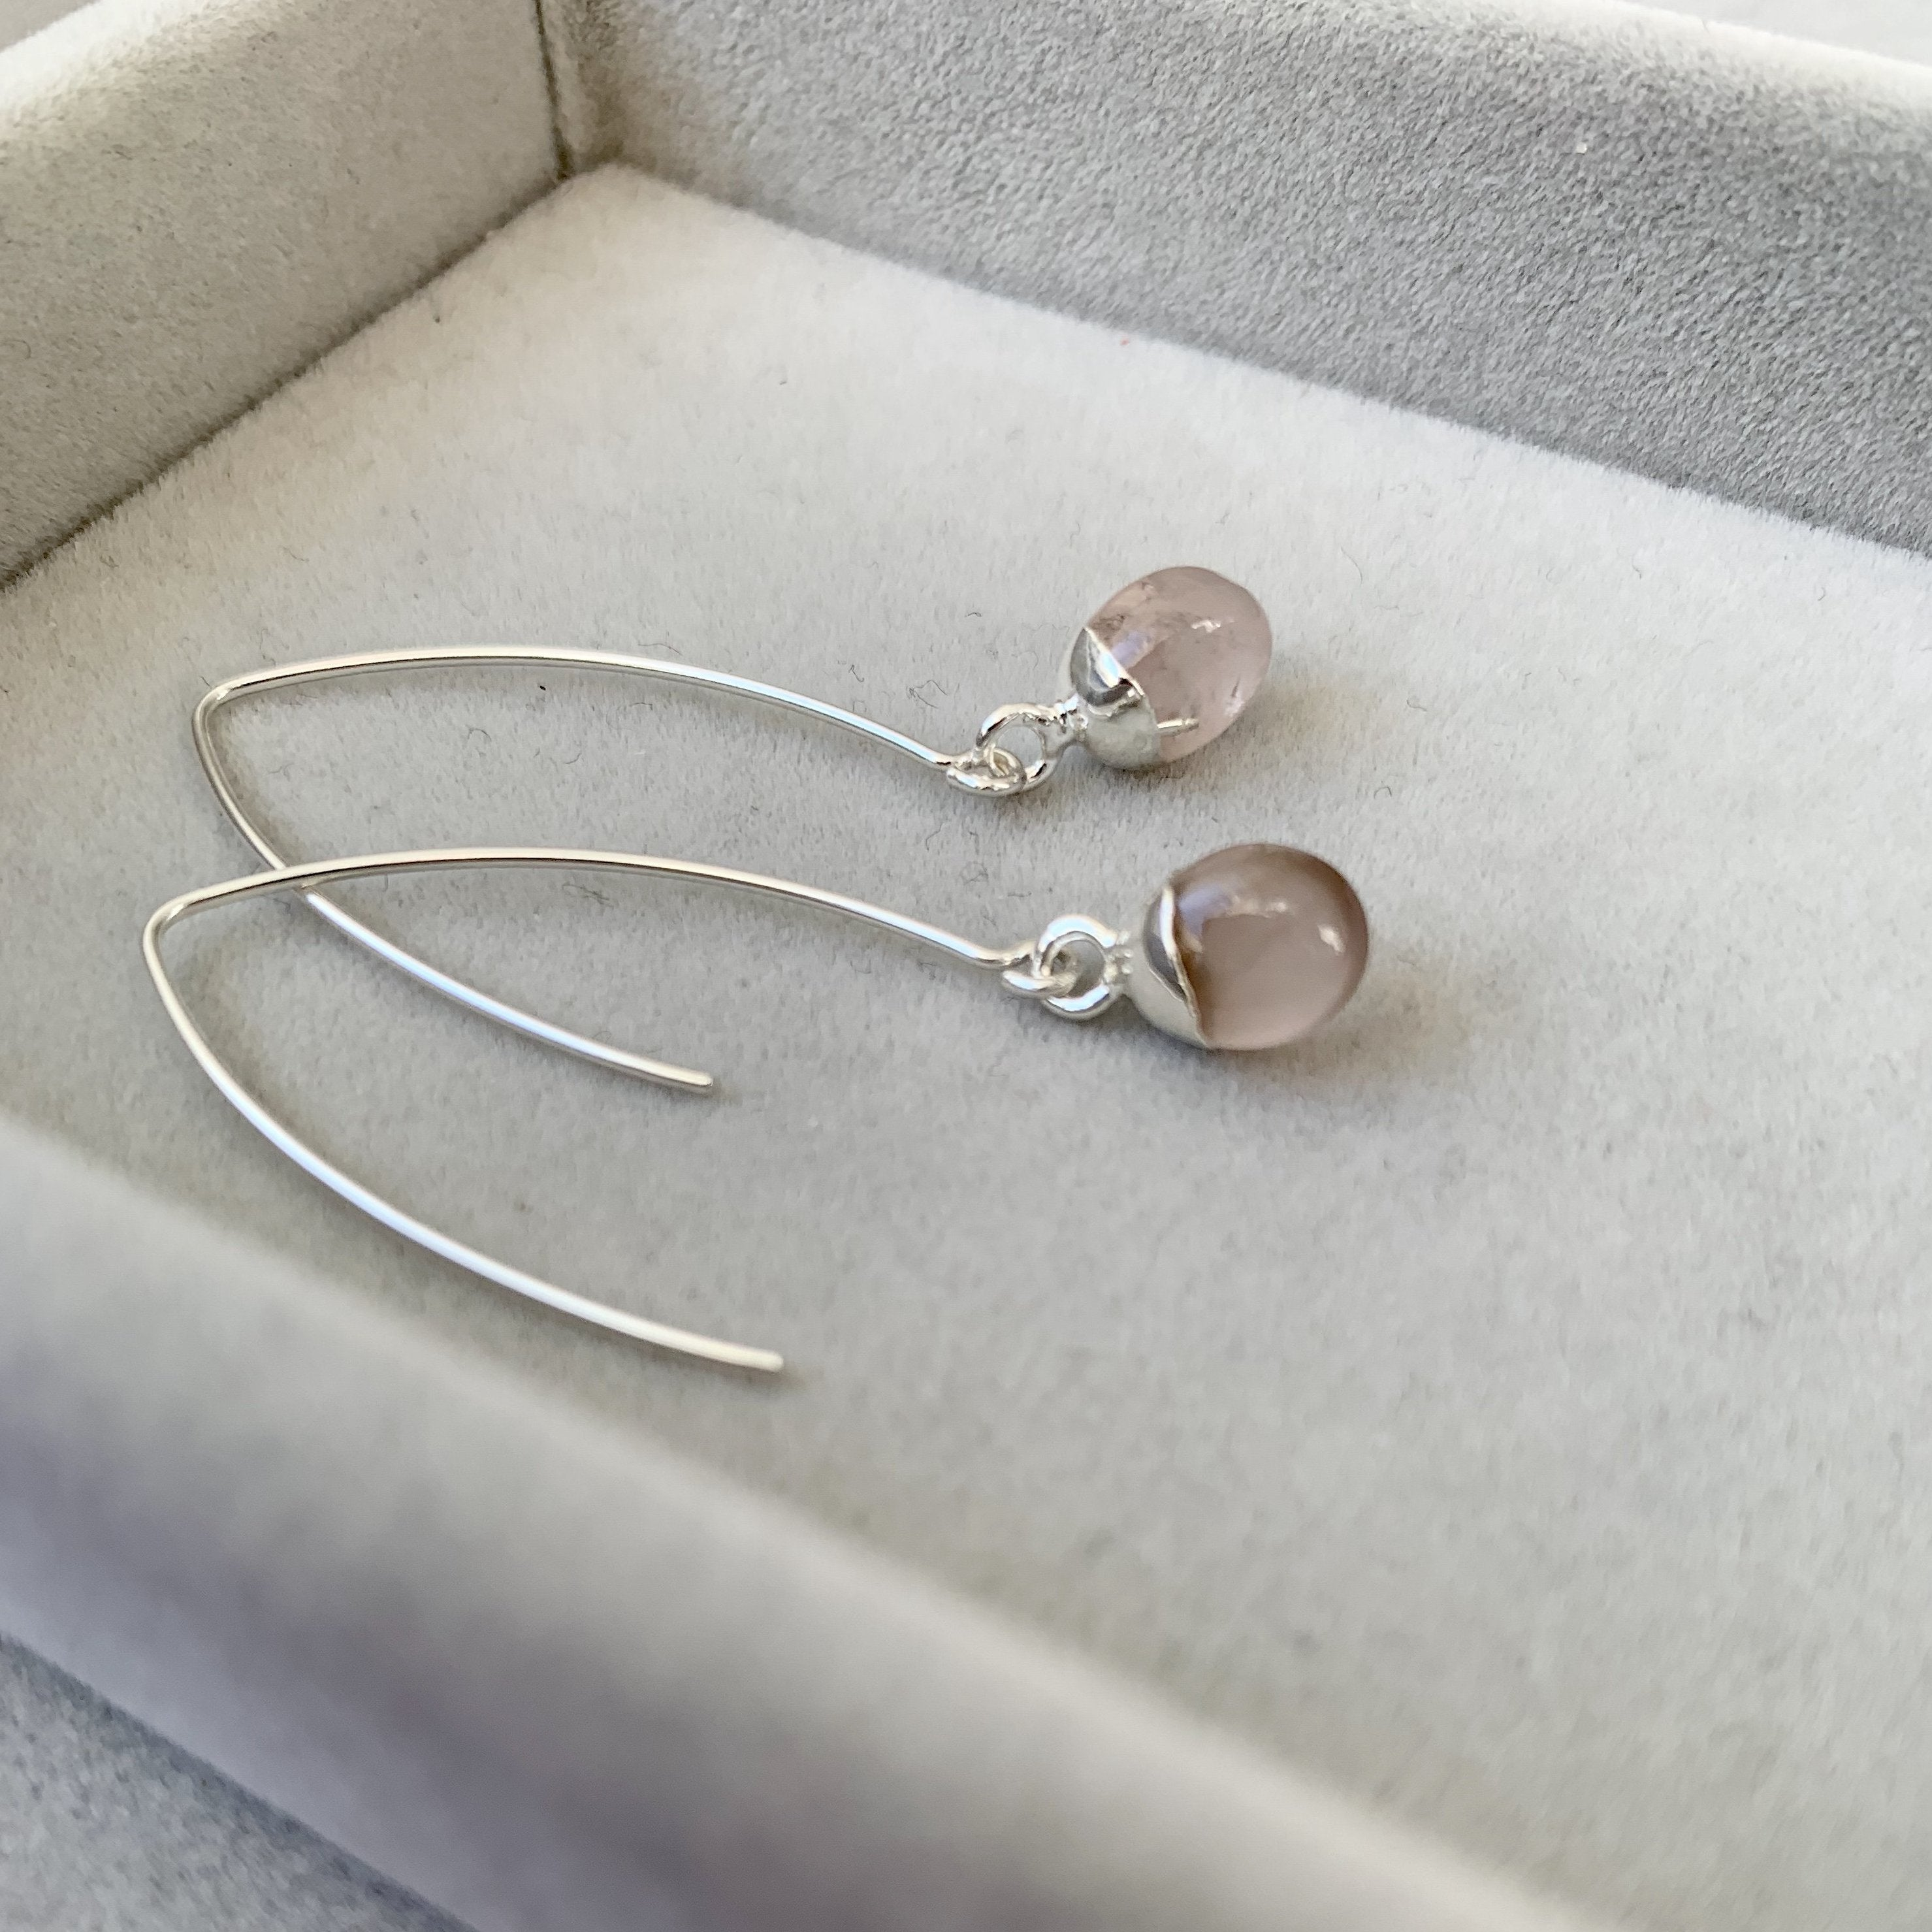 Tiny Tumbled Gemstone Dropper Earrings - Silver - Rose Quartz (Love) - Decadorn